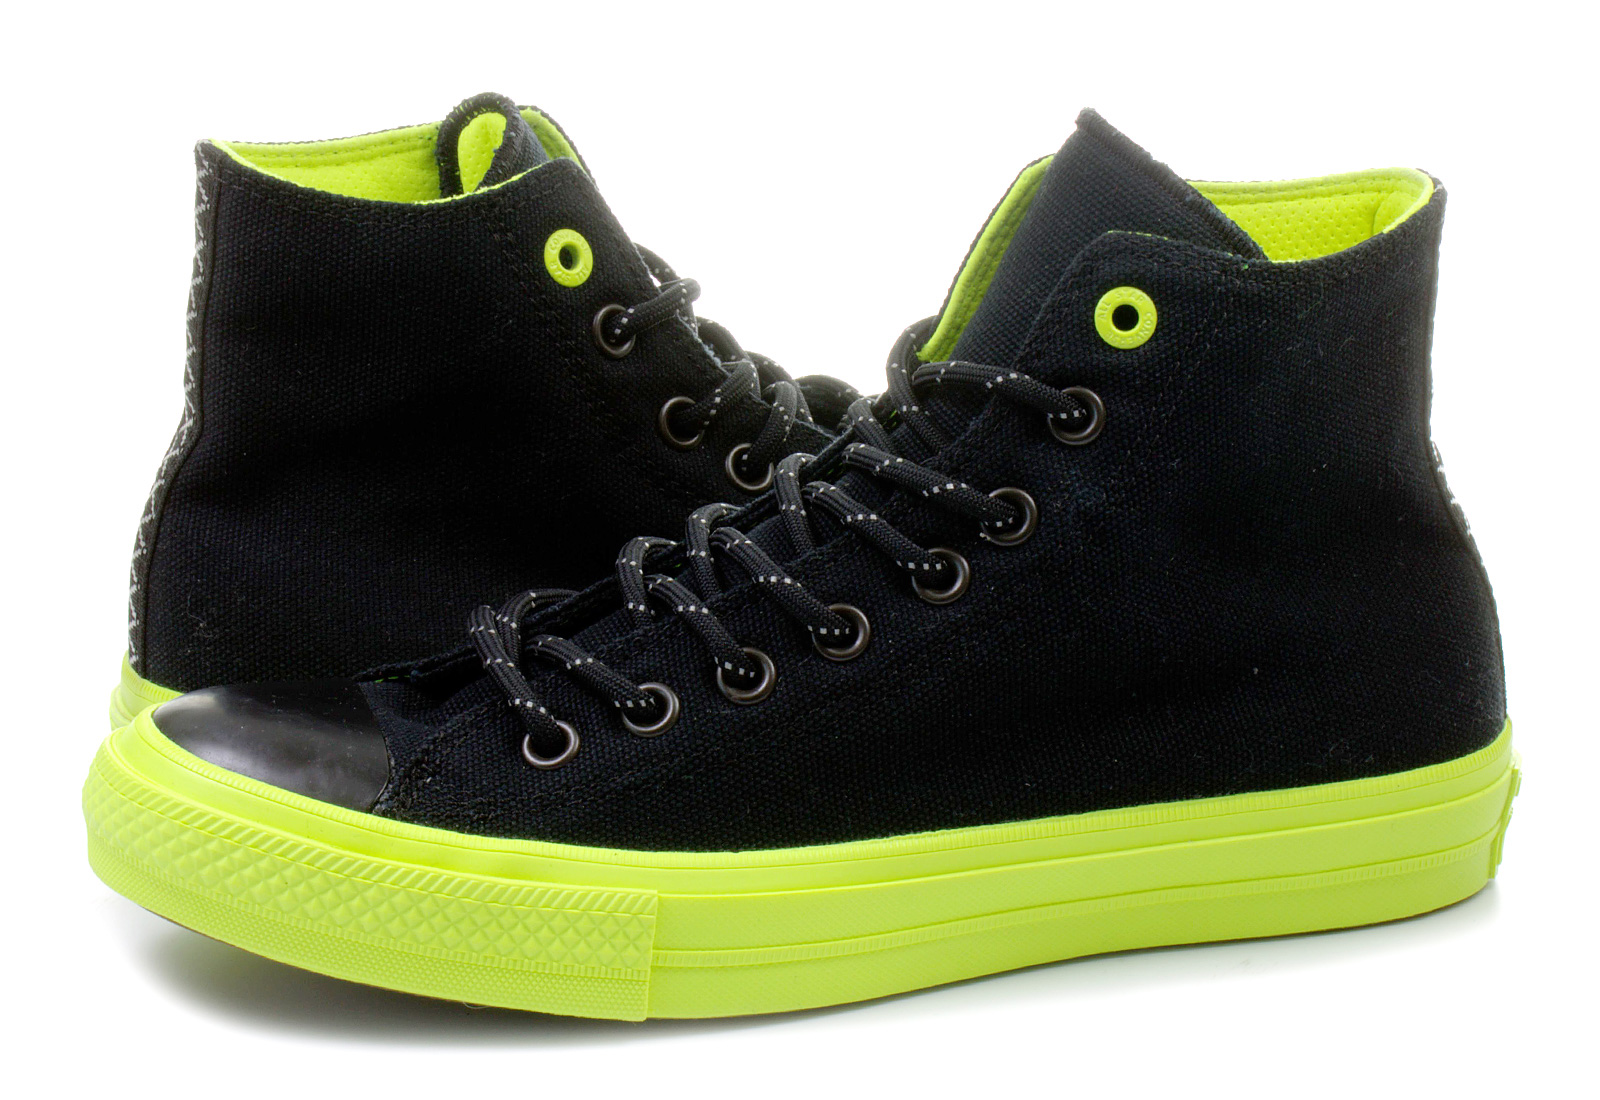 c1ddae83cfb1 Converse Sneakers - Chuck Taylor All Star II Hi - 153533C - Online ...